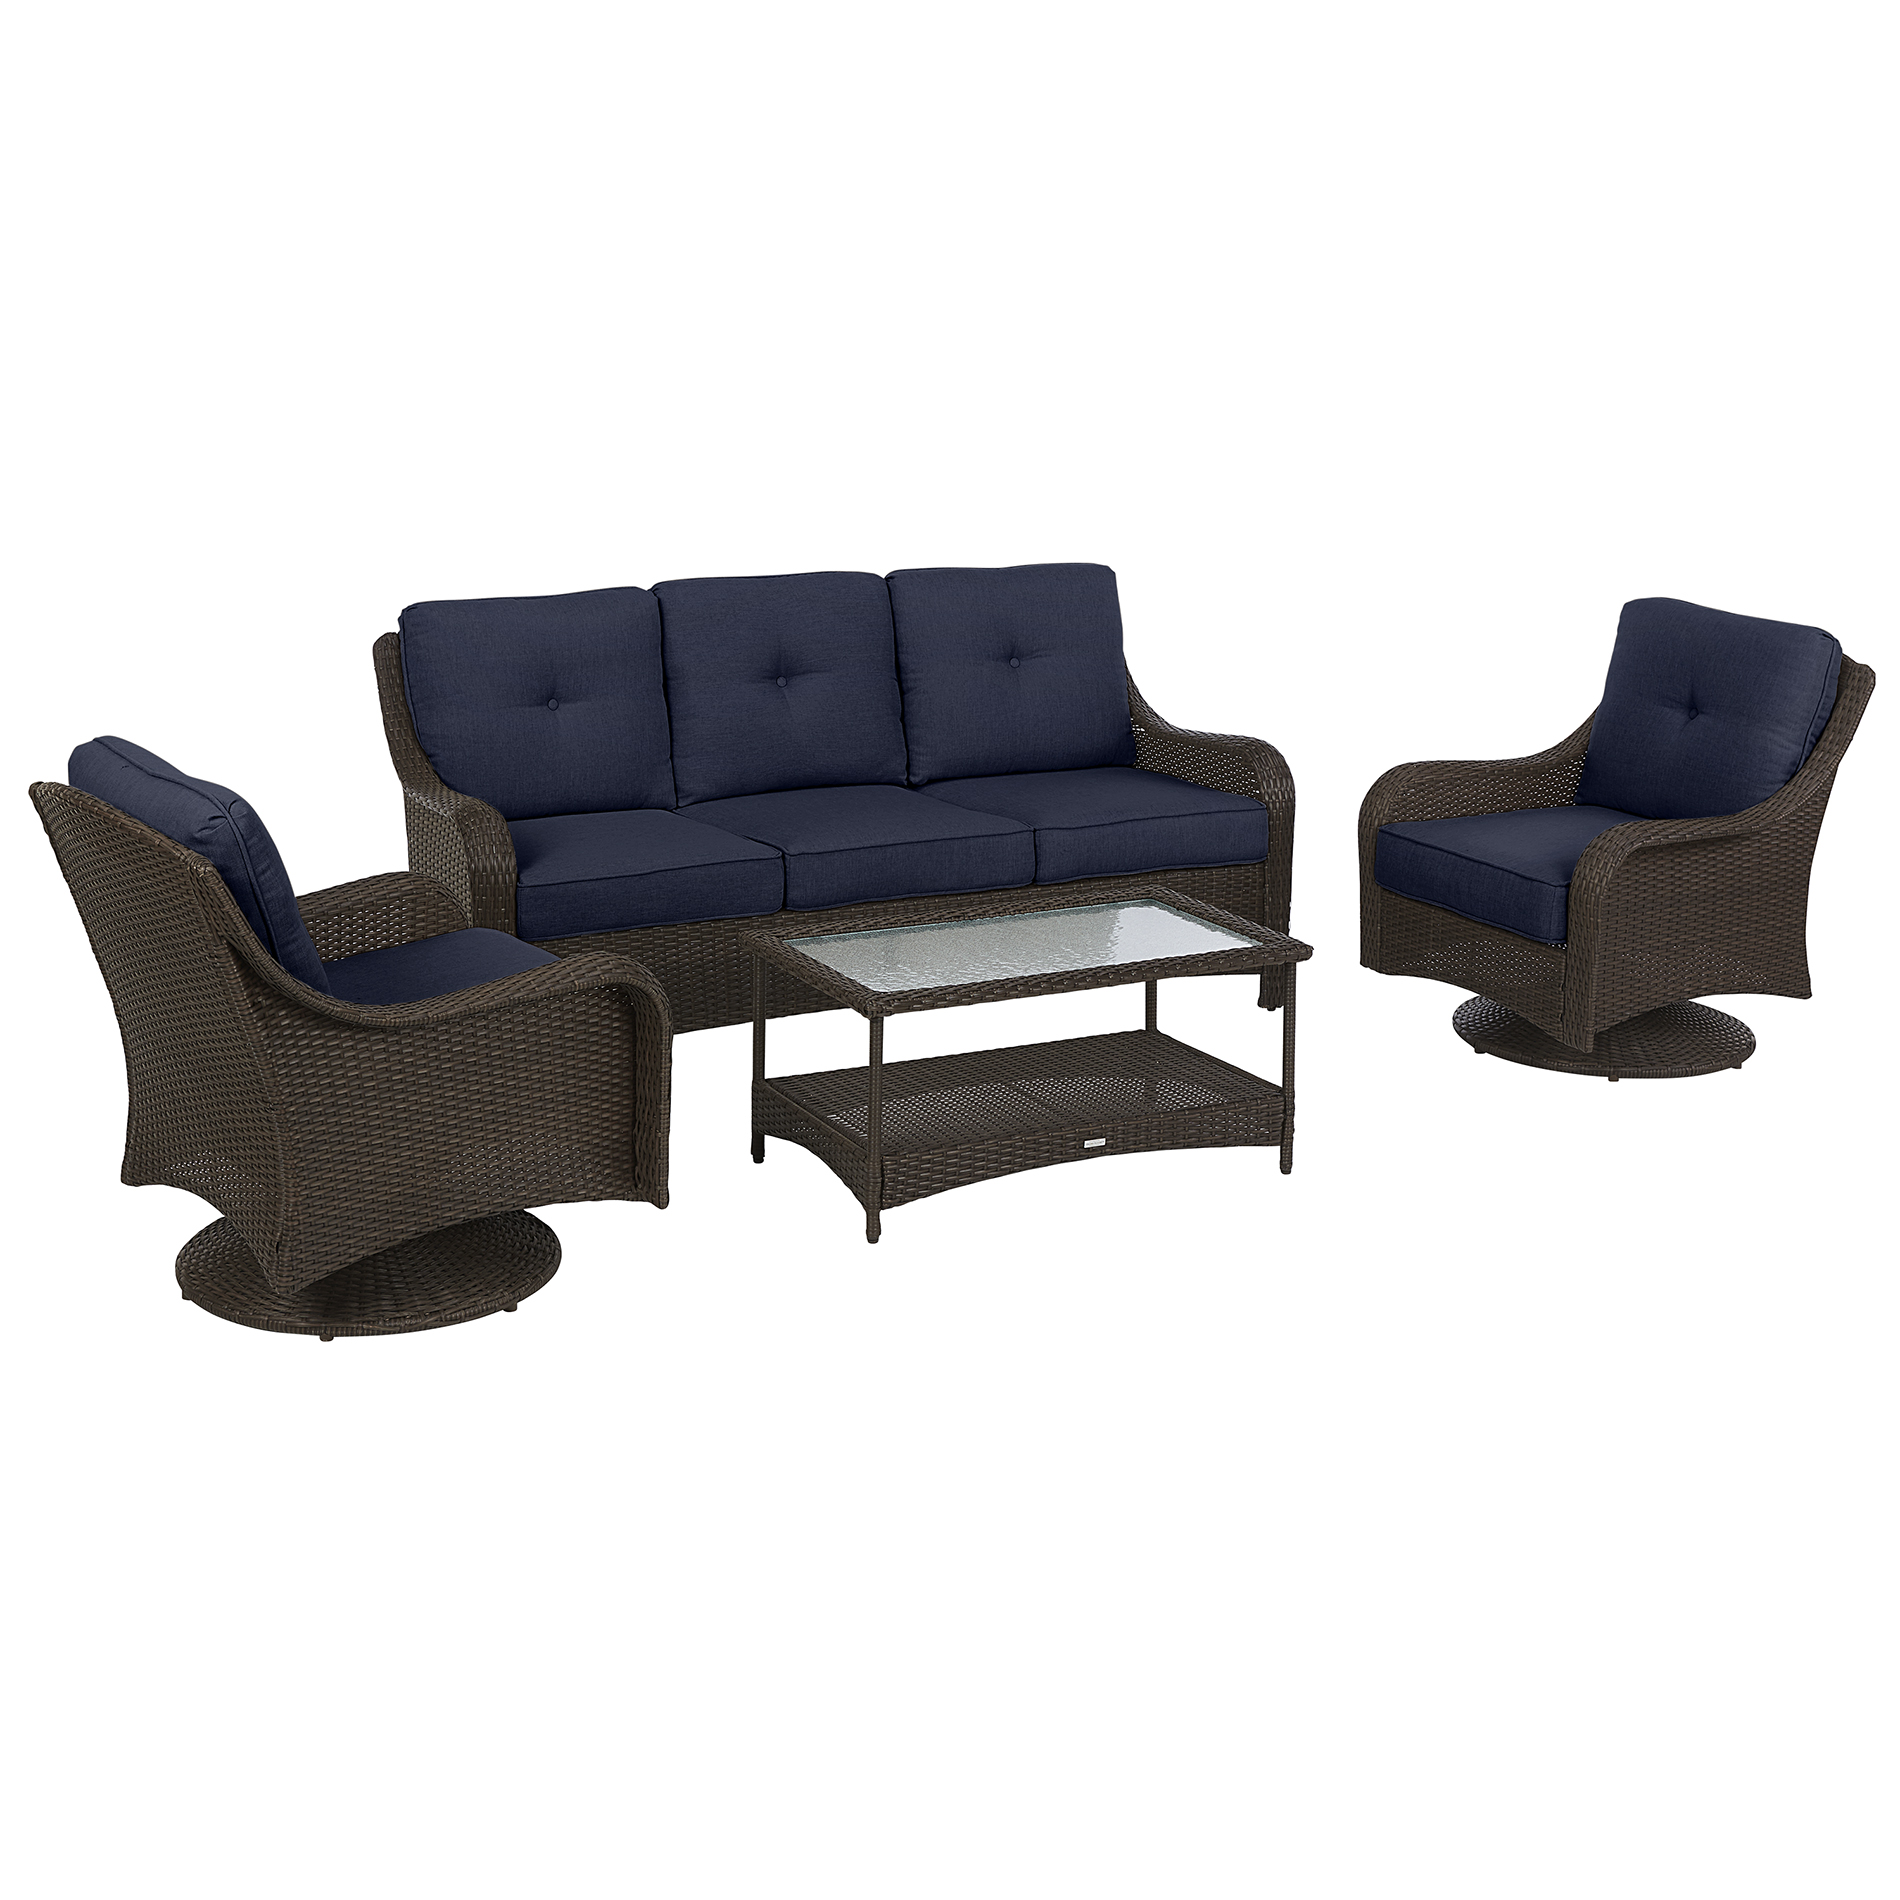 Grand Resort Summerfield 4pc. Seating With Swivel - Blue